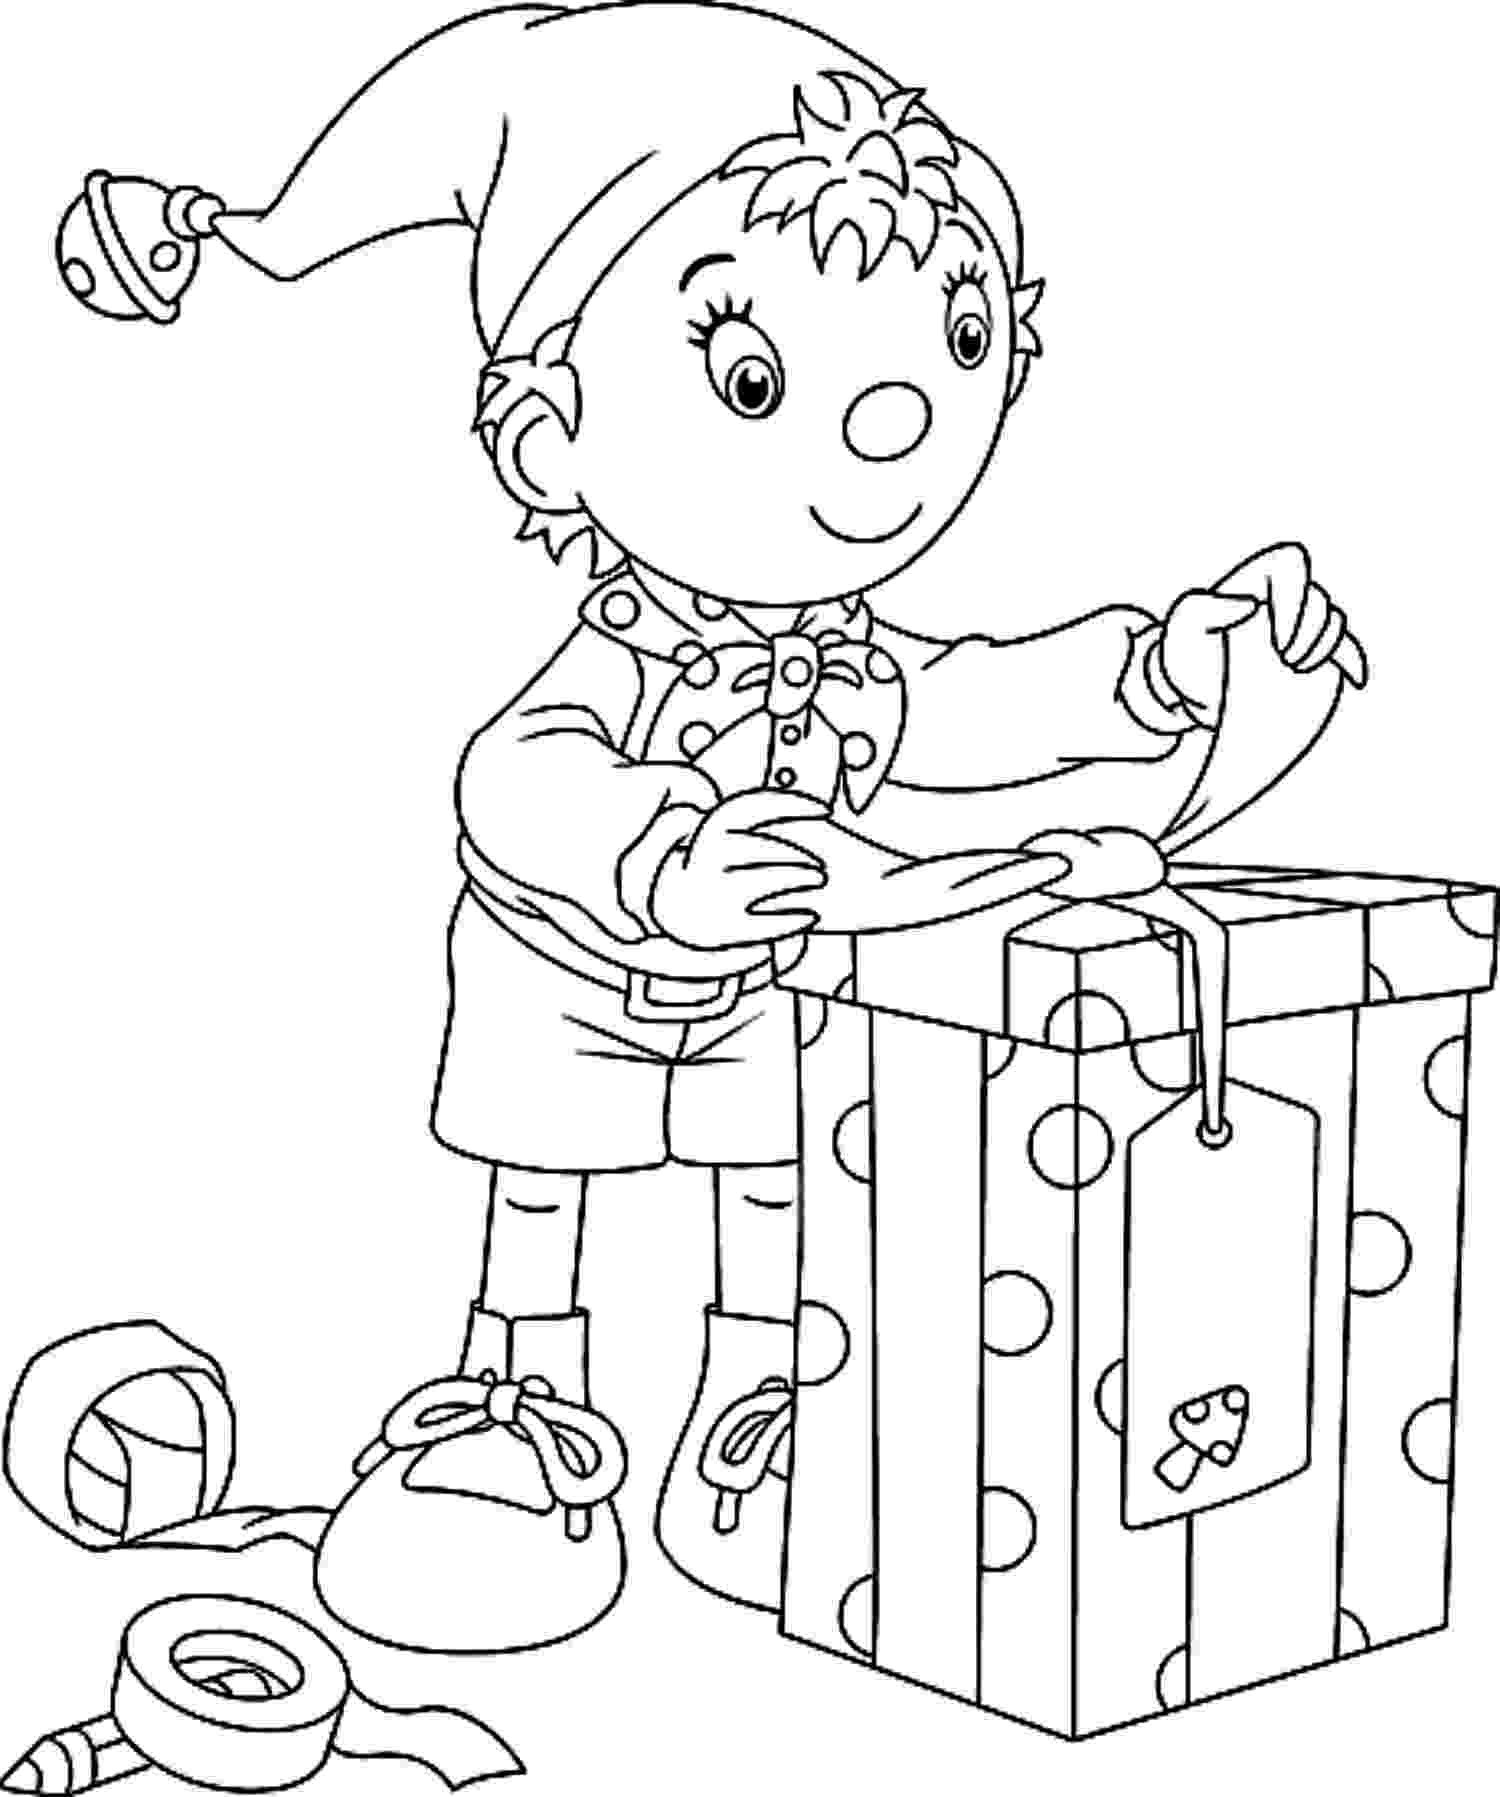 colouring pages for nursery rhymes nursery rhyme coloring pages getcoloringpagescom colouring pages nursery for rhymes